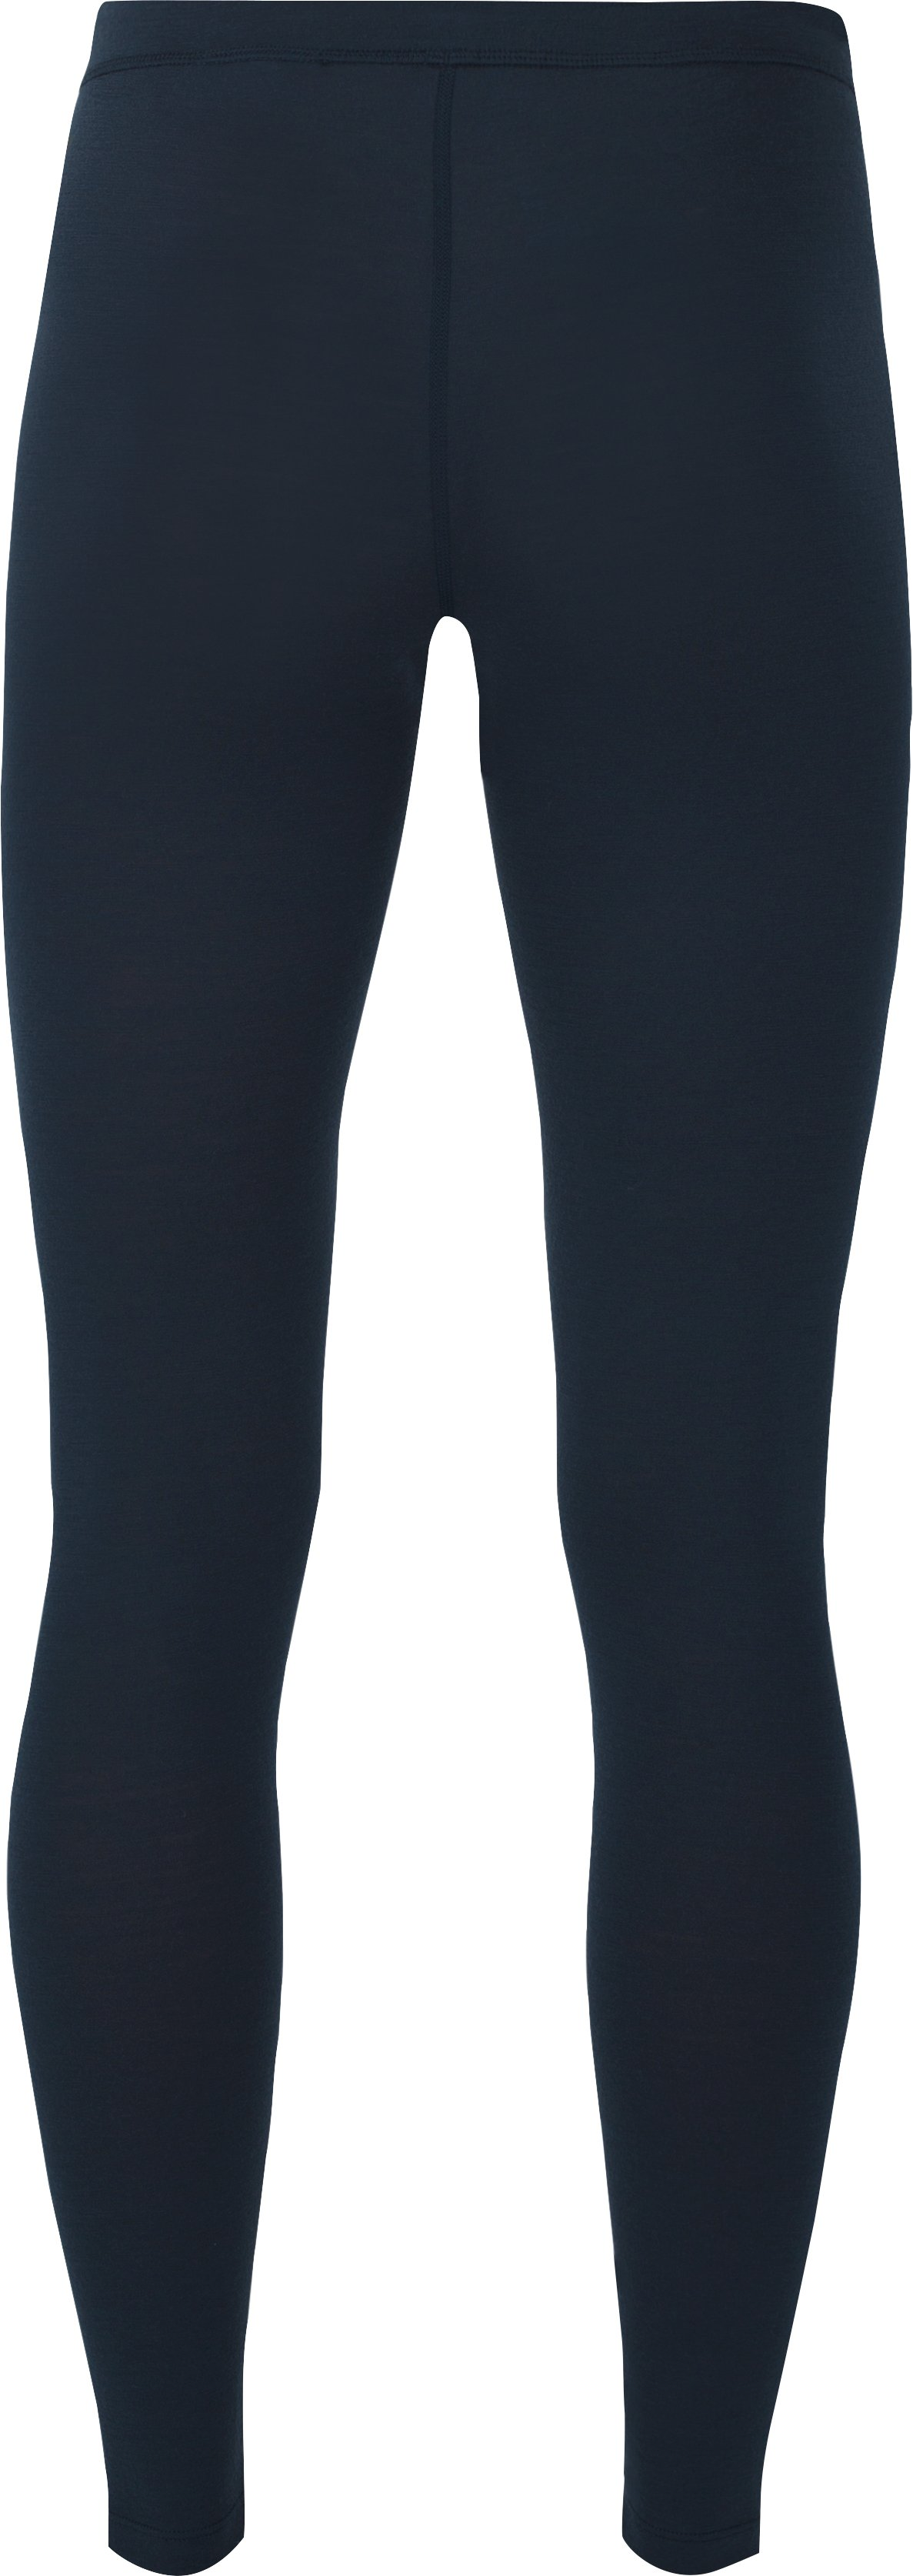 Women's UAS Prime Leggings, Navy, undefined